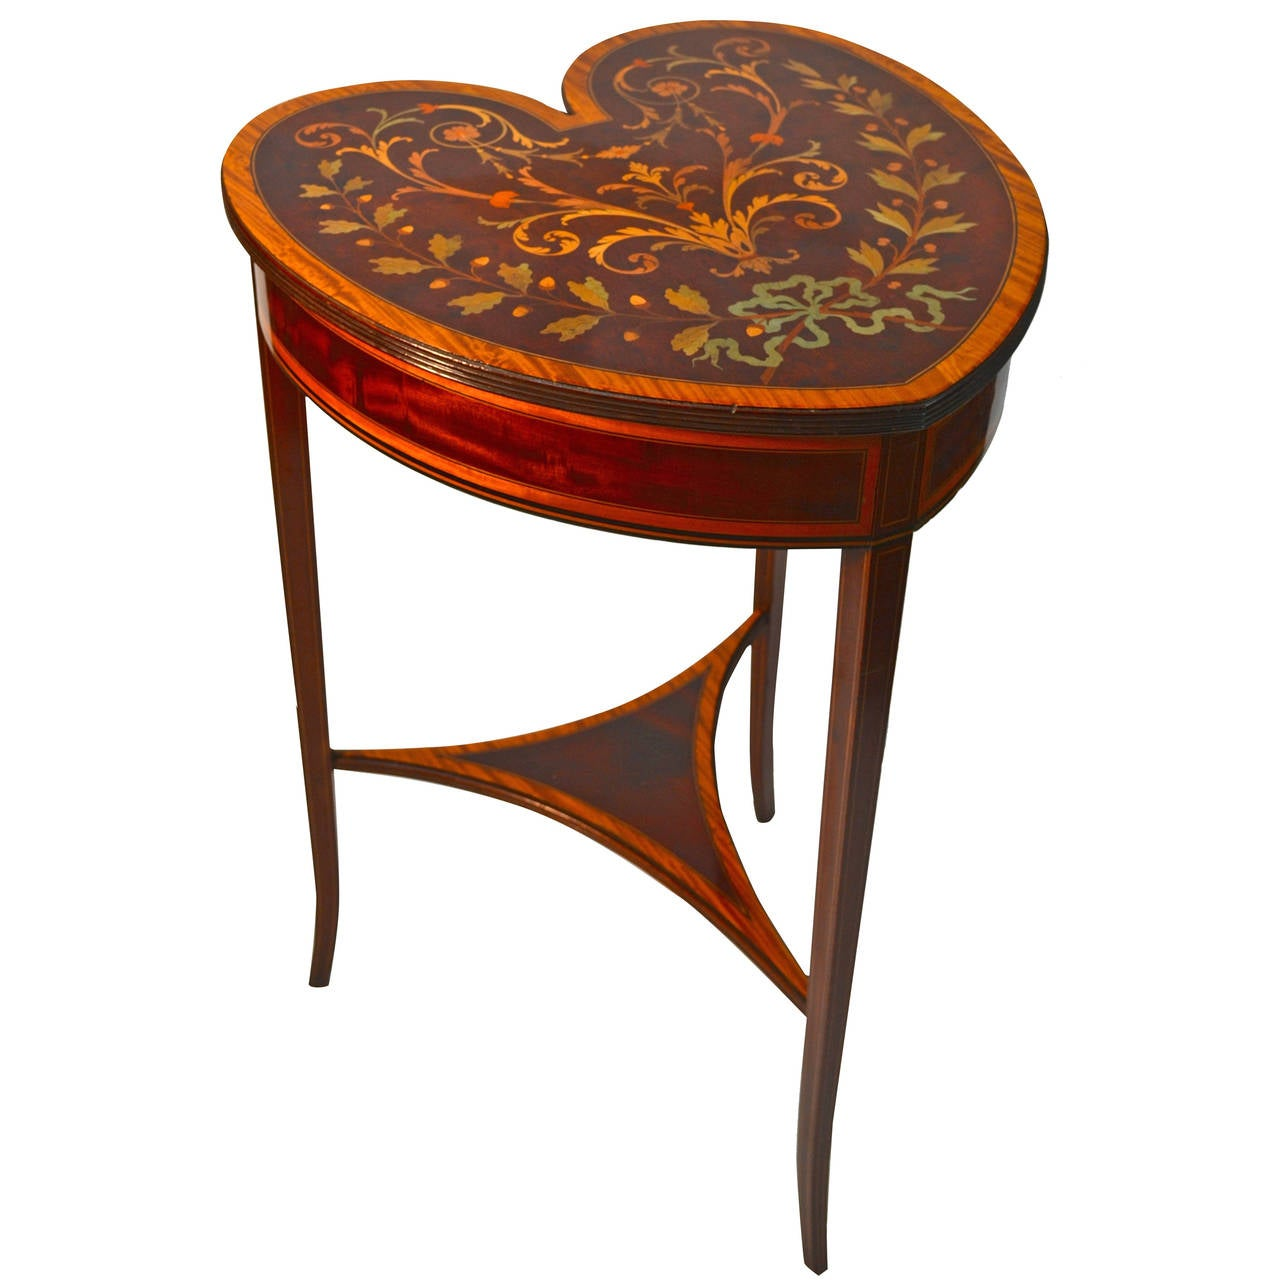 Edwardian heart shaped table at 1stdibs - Archives departementales 33 tables decennales ...